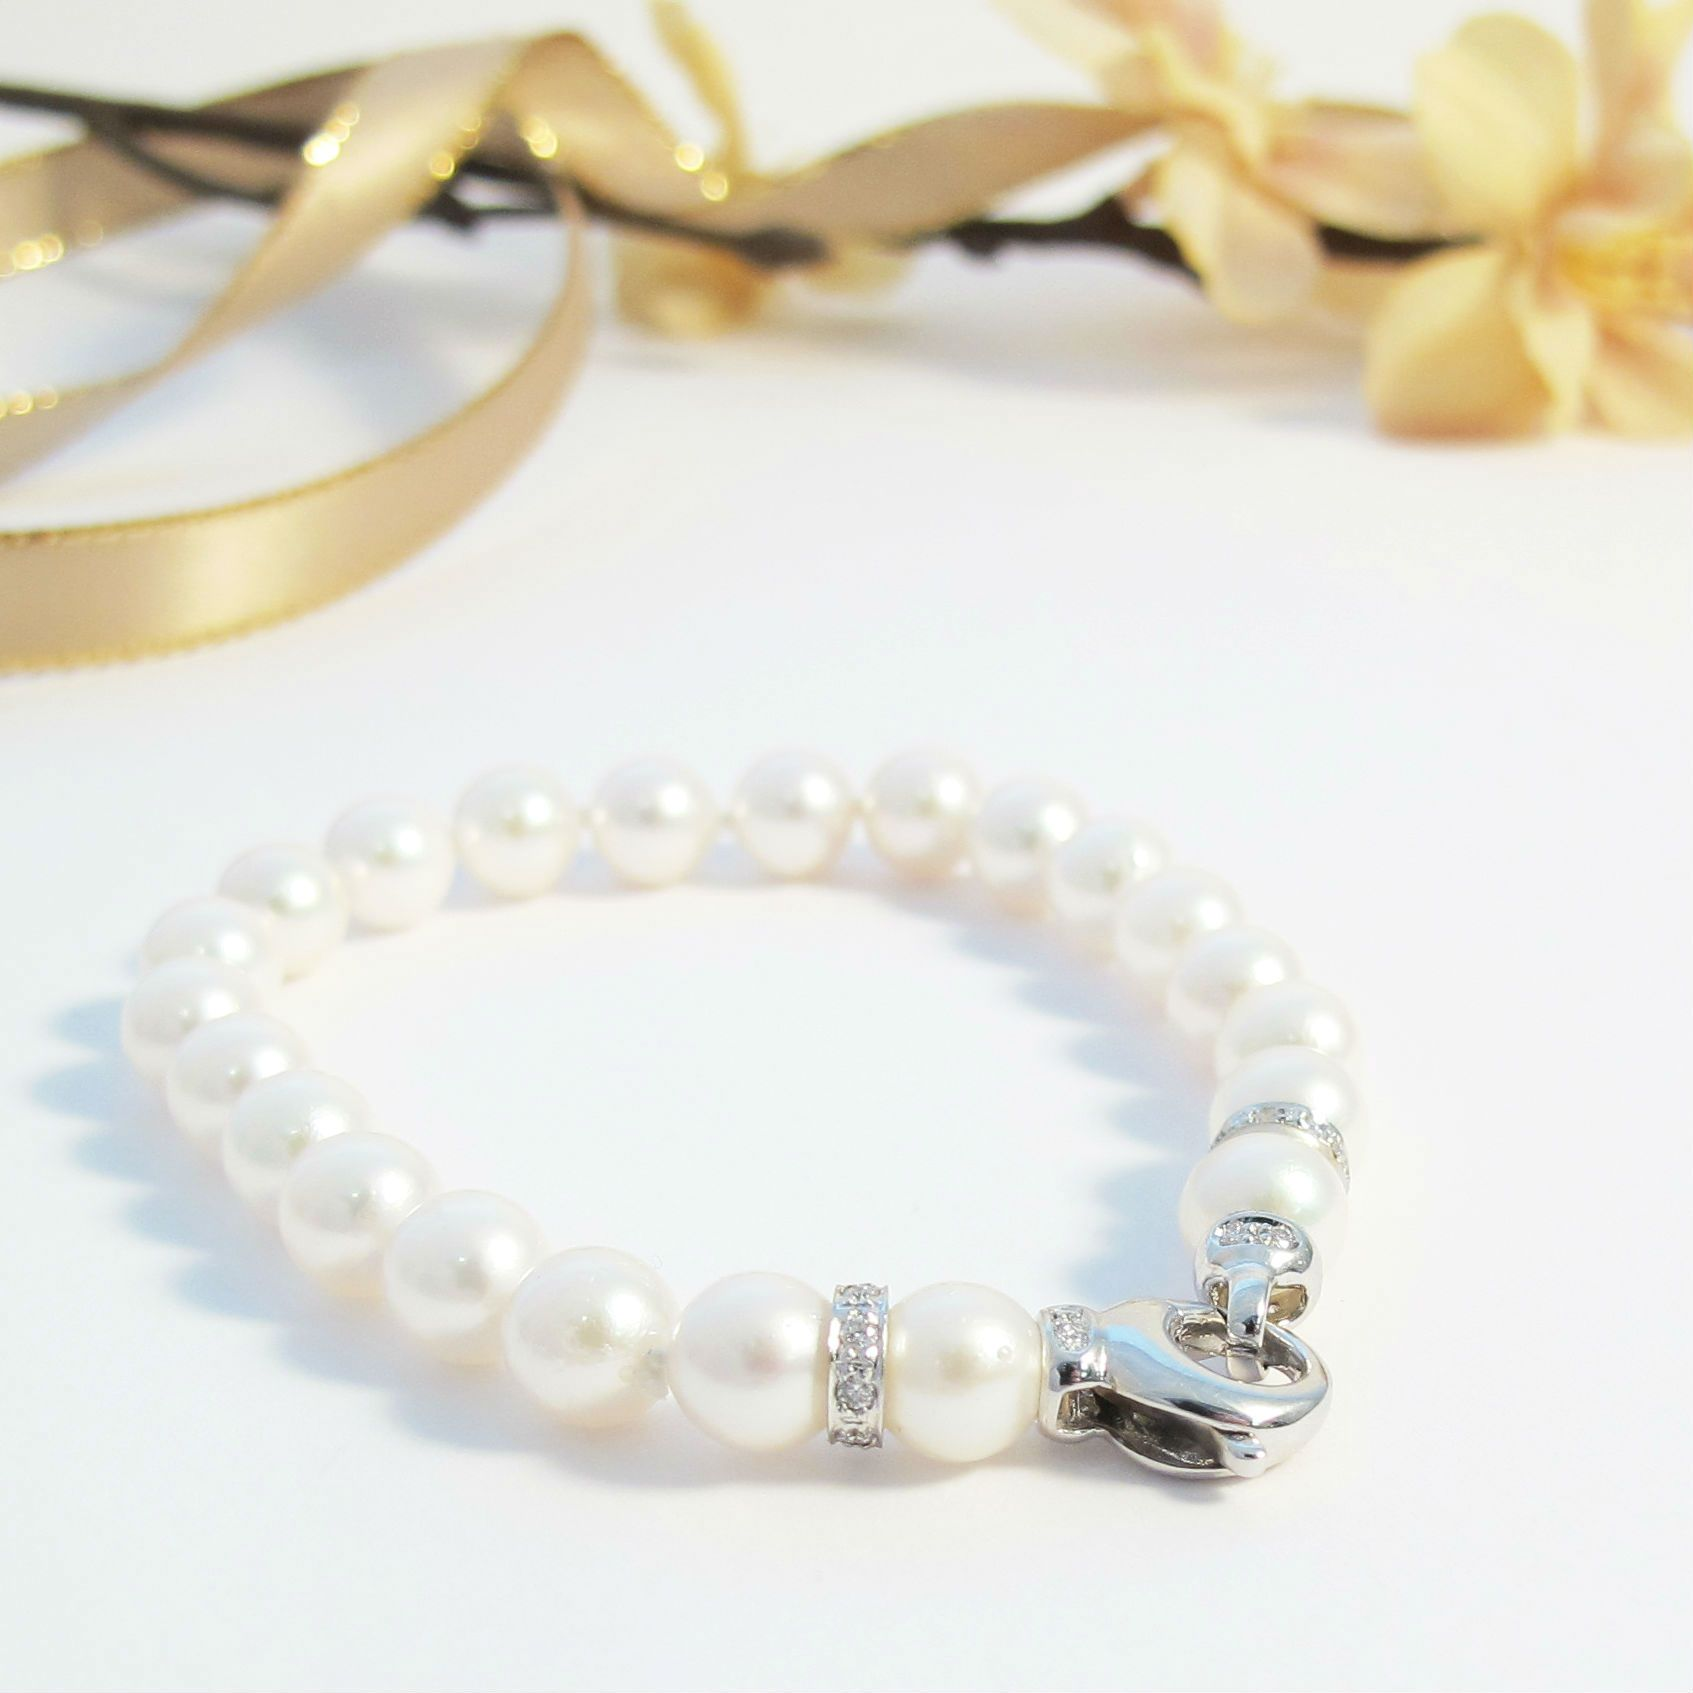 myjs a wgp tennis wedding itm day bridal bracelet angelic with gift swarovski crystals